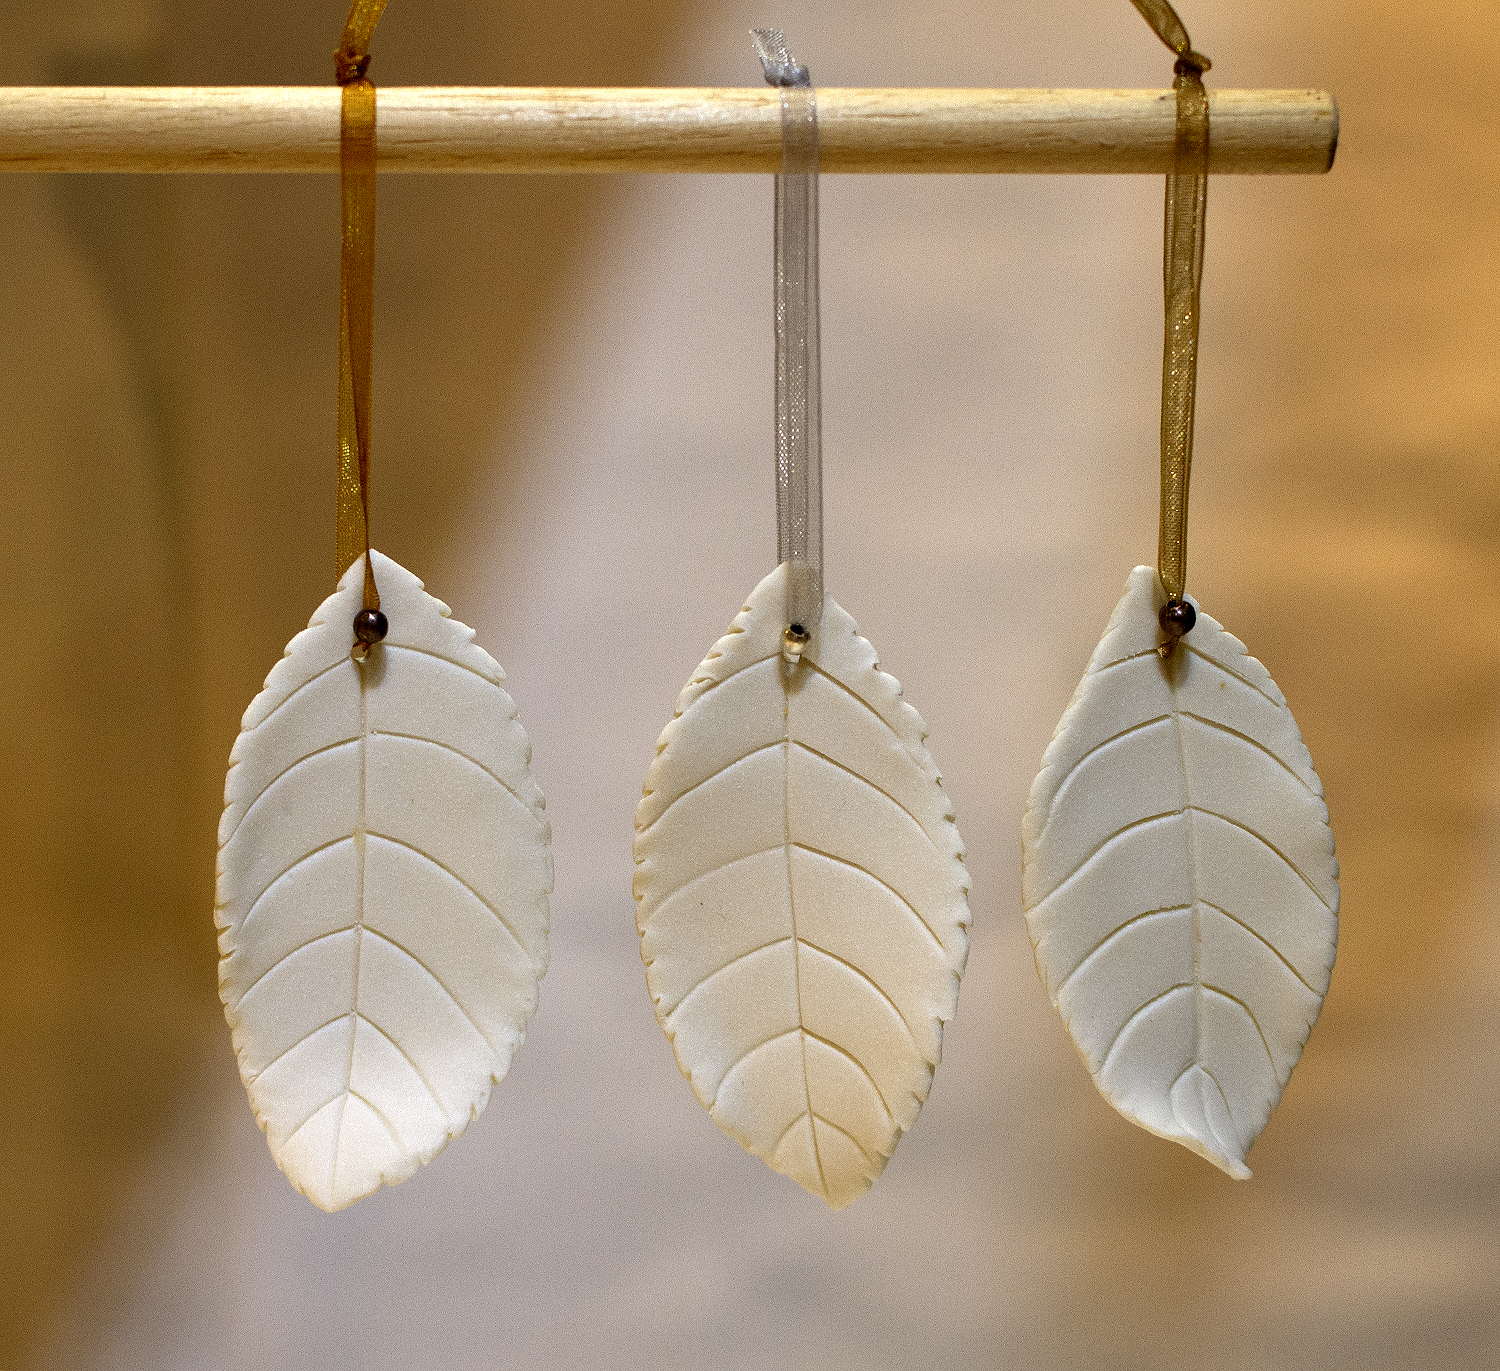 Beech leaves unglazed christmas decorations.jpg